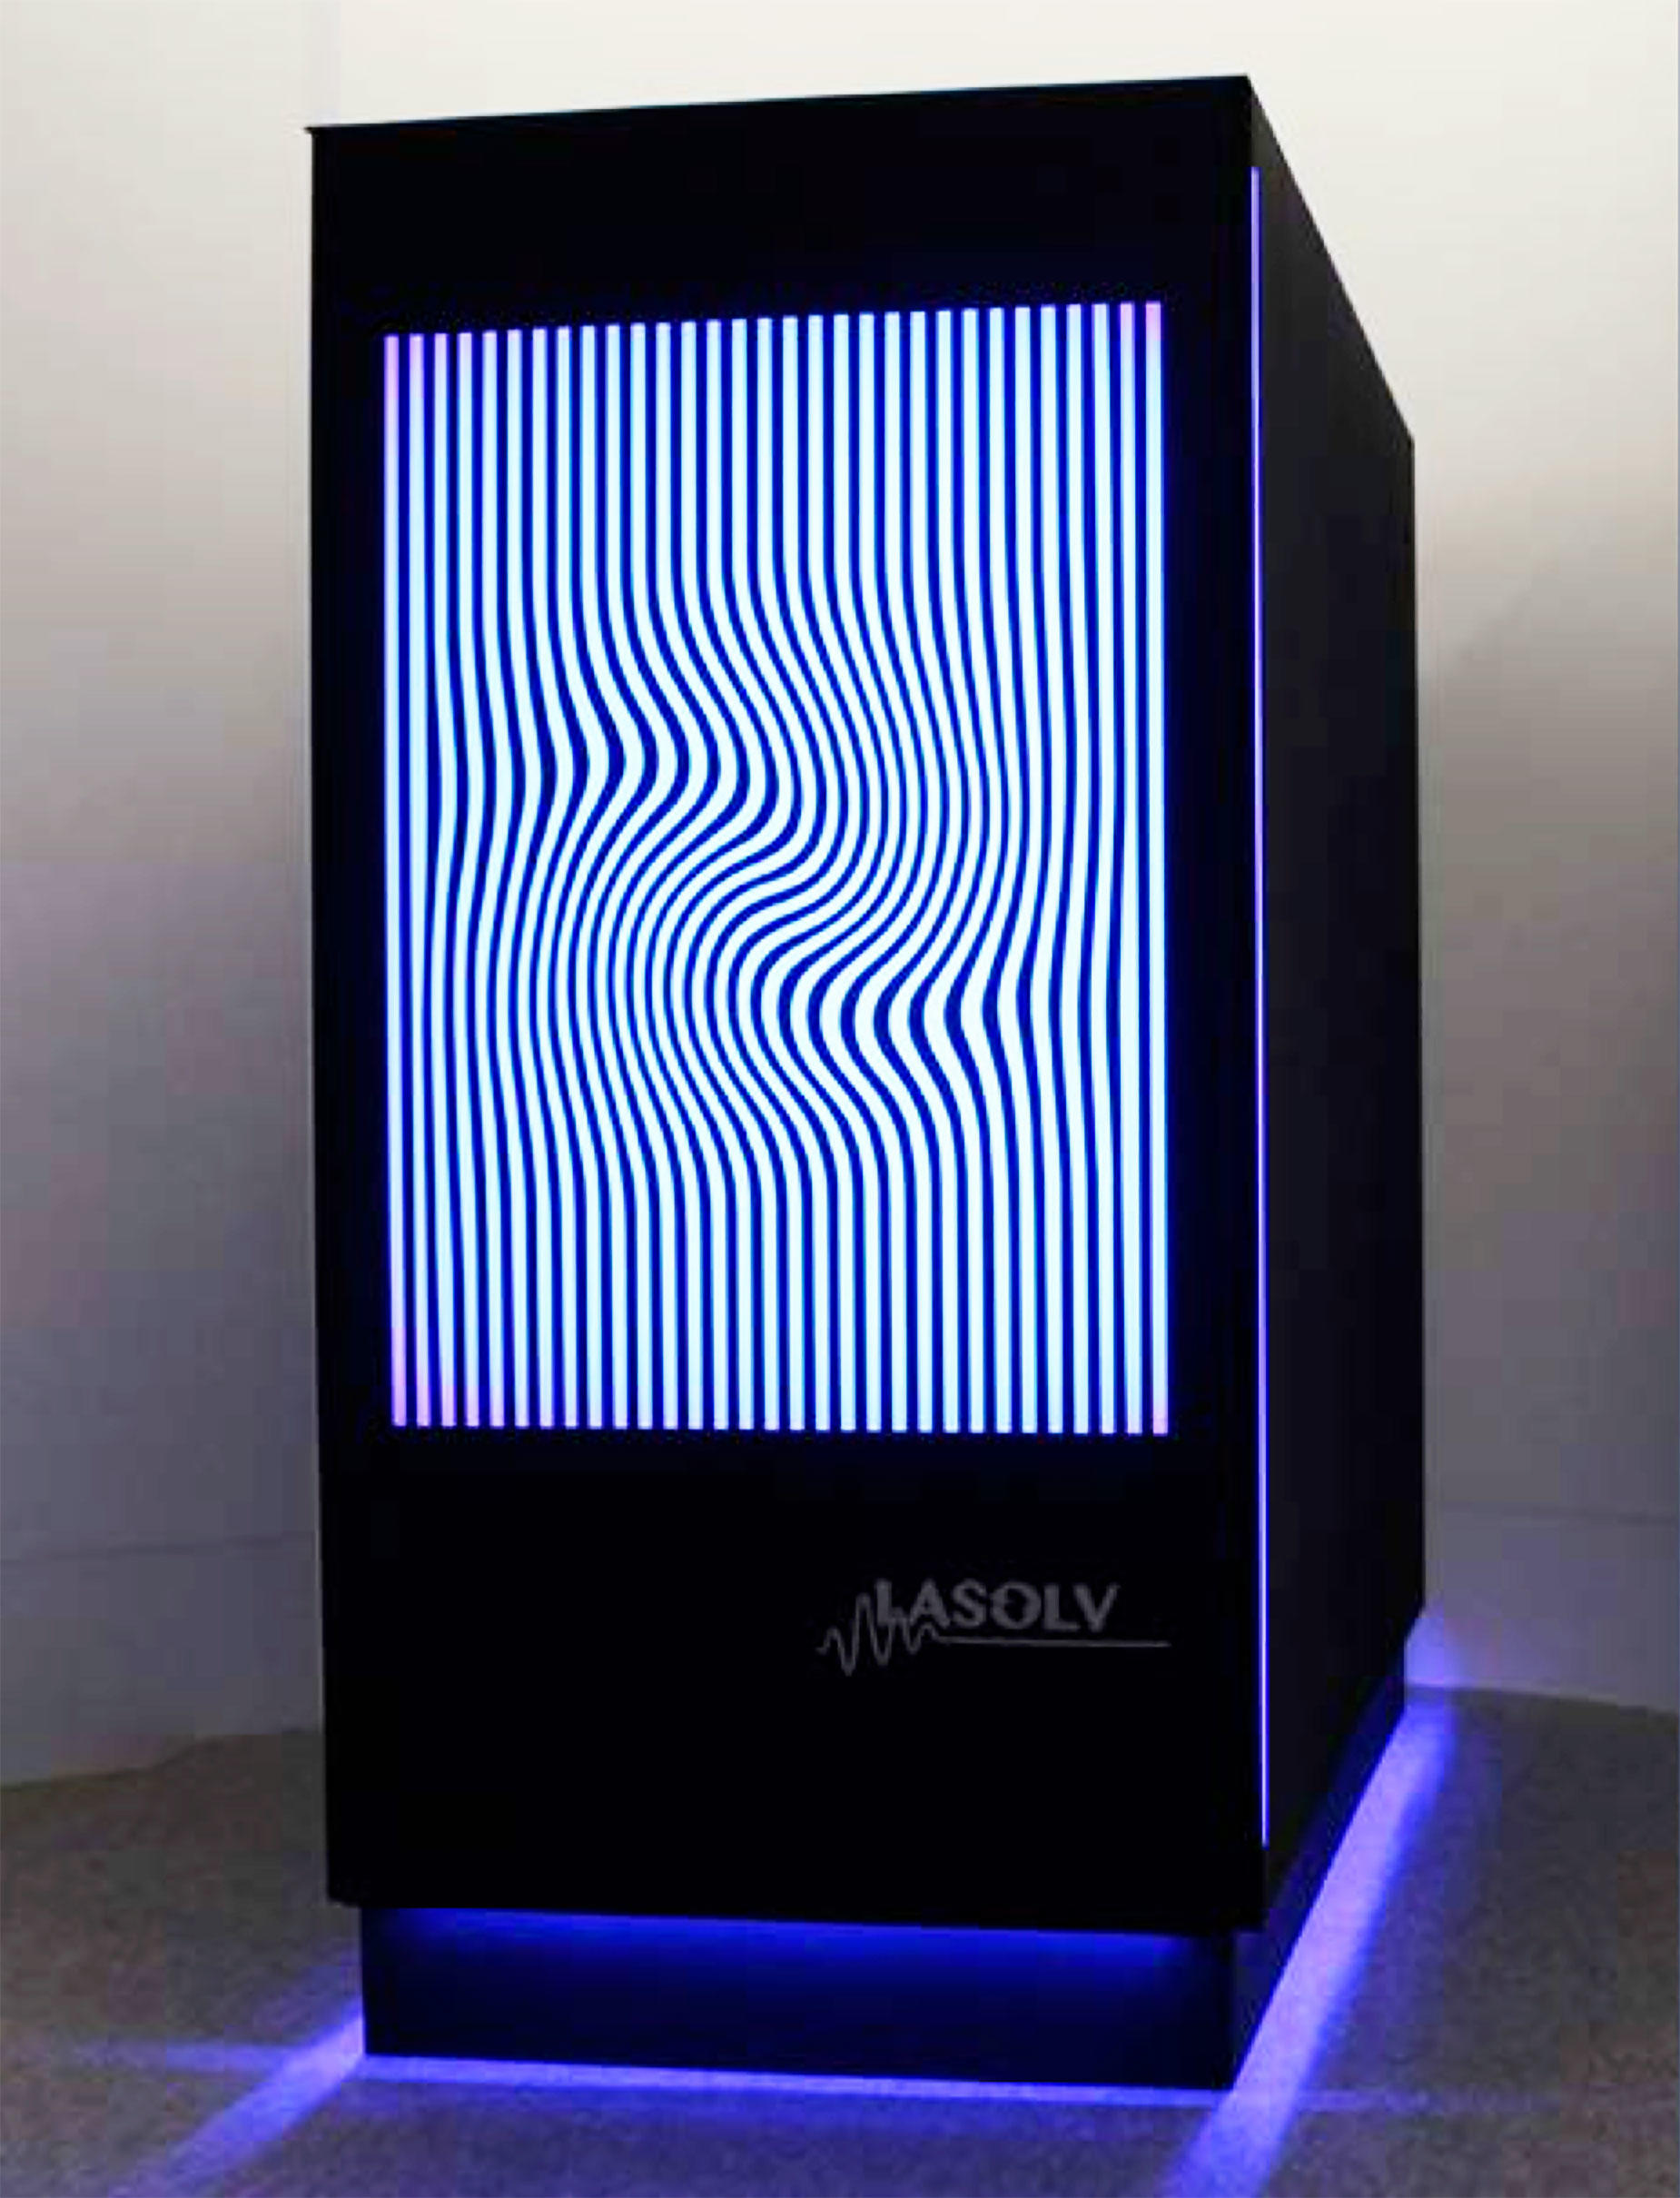 NTT's LASOLV computer is designed to tackle computing challenges using the interaction of light waves.